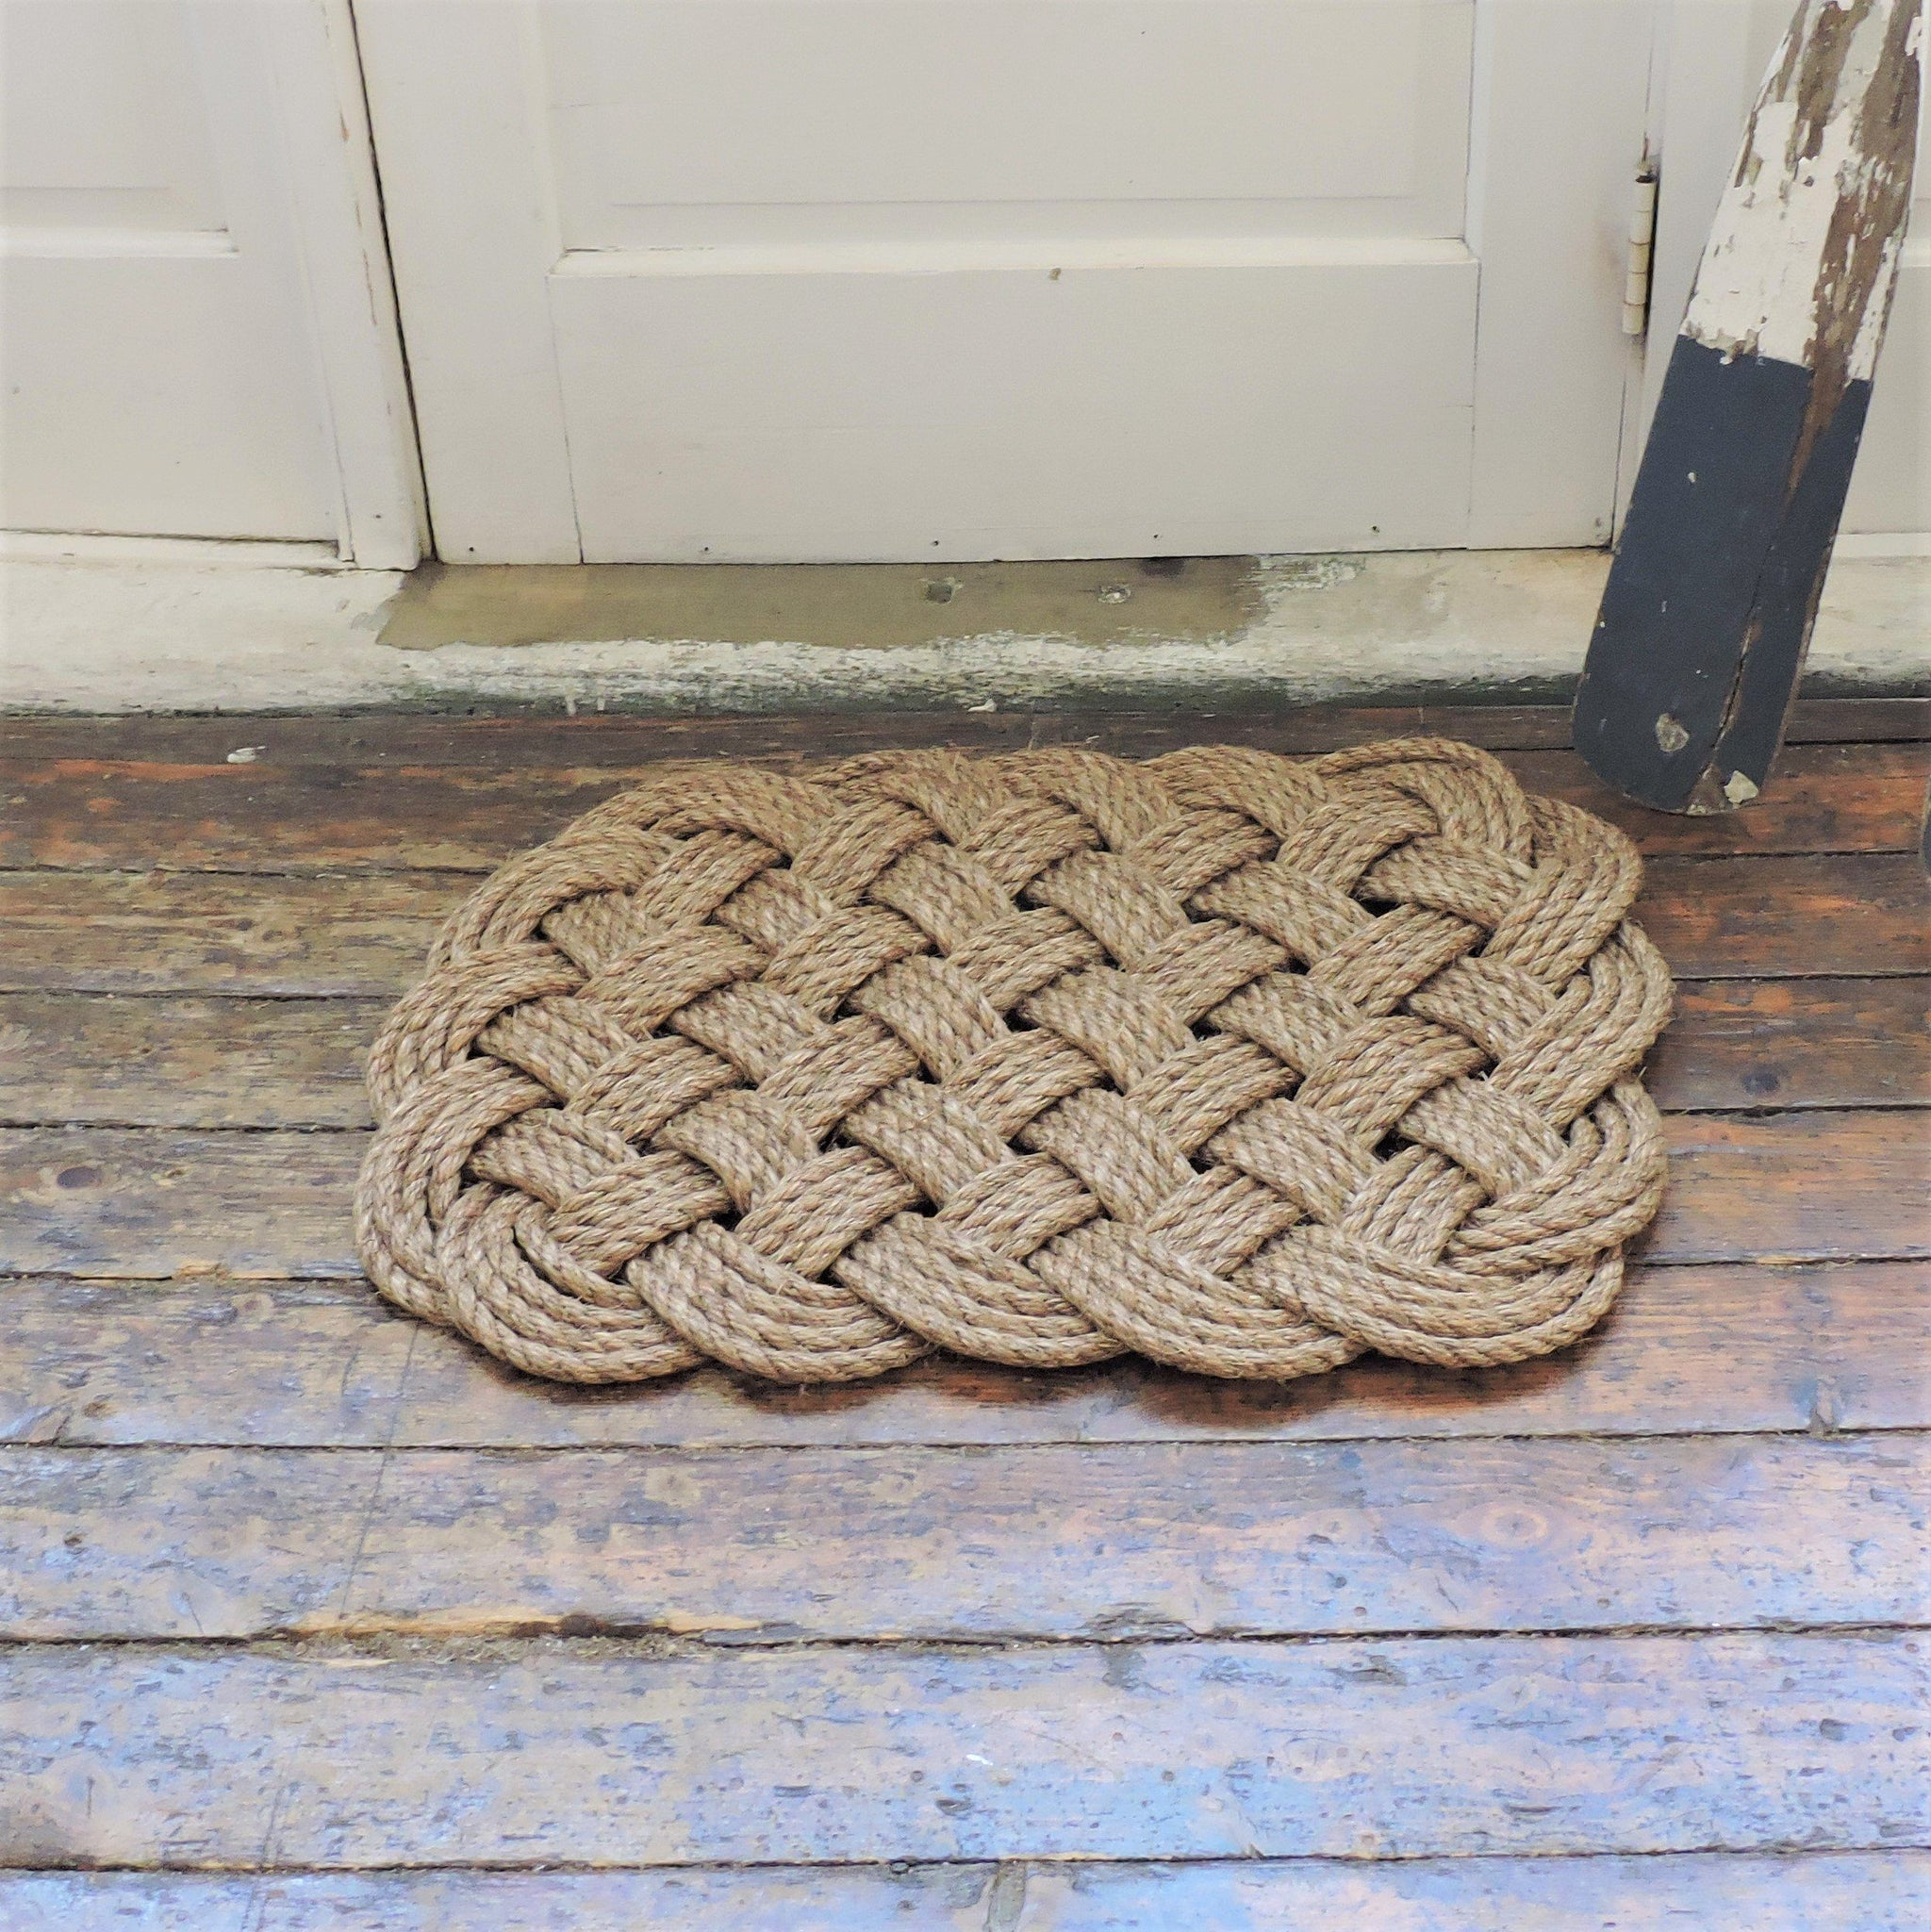 Woven Nautical Rug Entry Mat In Manila Rope ...